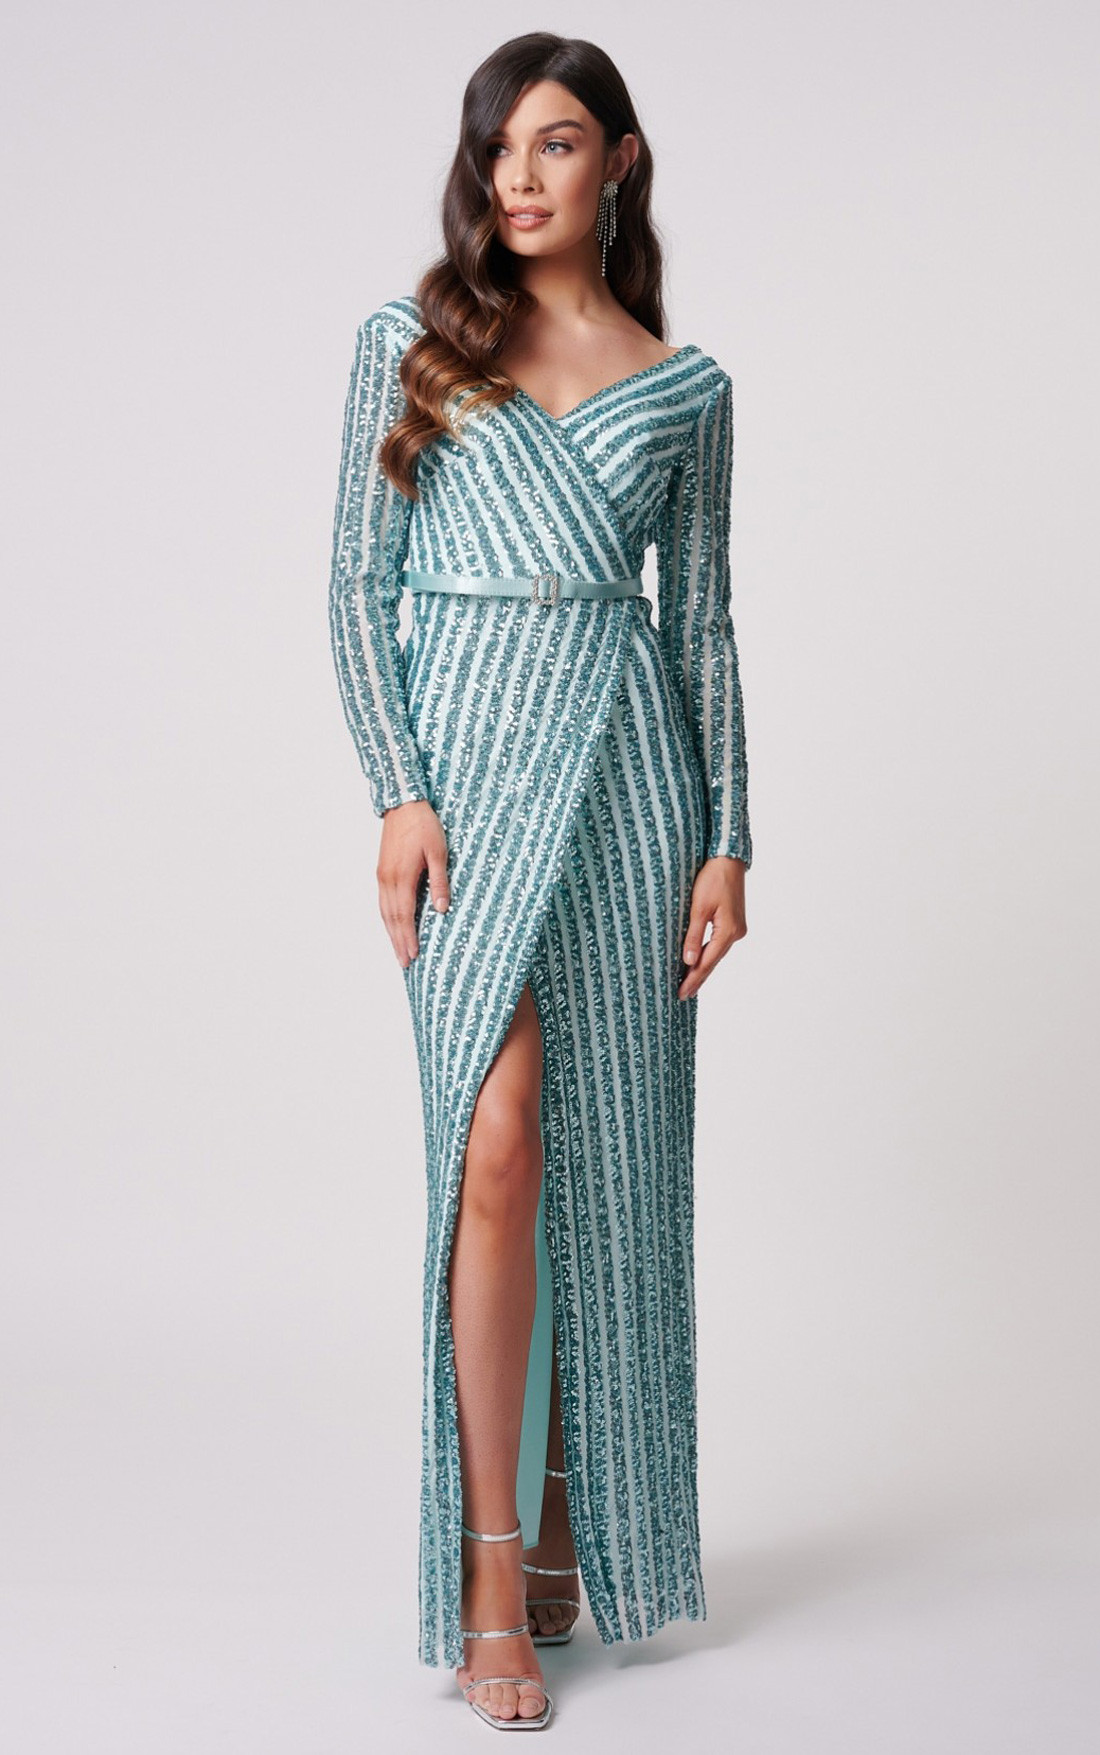 Forever Unique - Ashanti Turquoise Striped Long Sleeve Sequinned Maxi Dress (MN208301)